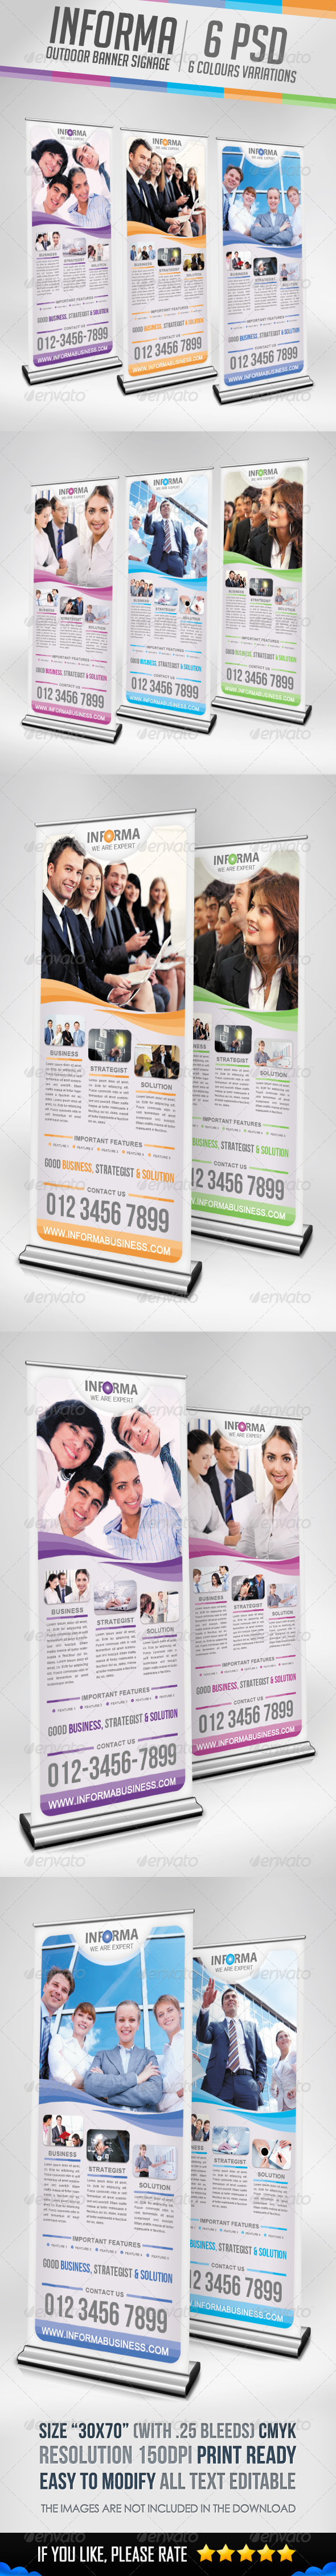 Informa - Outdoor Banner Signage - Signage Print Templates